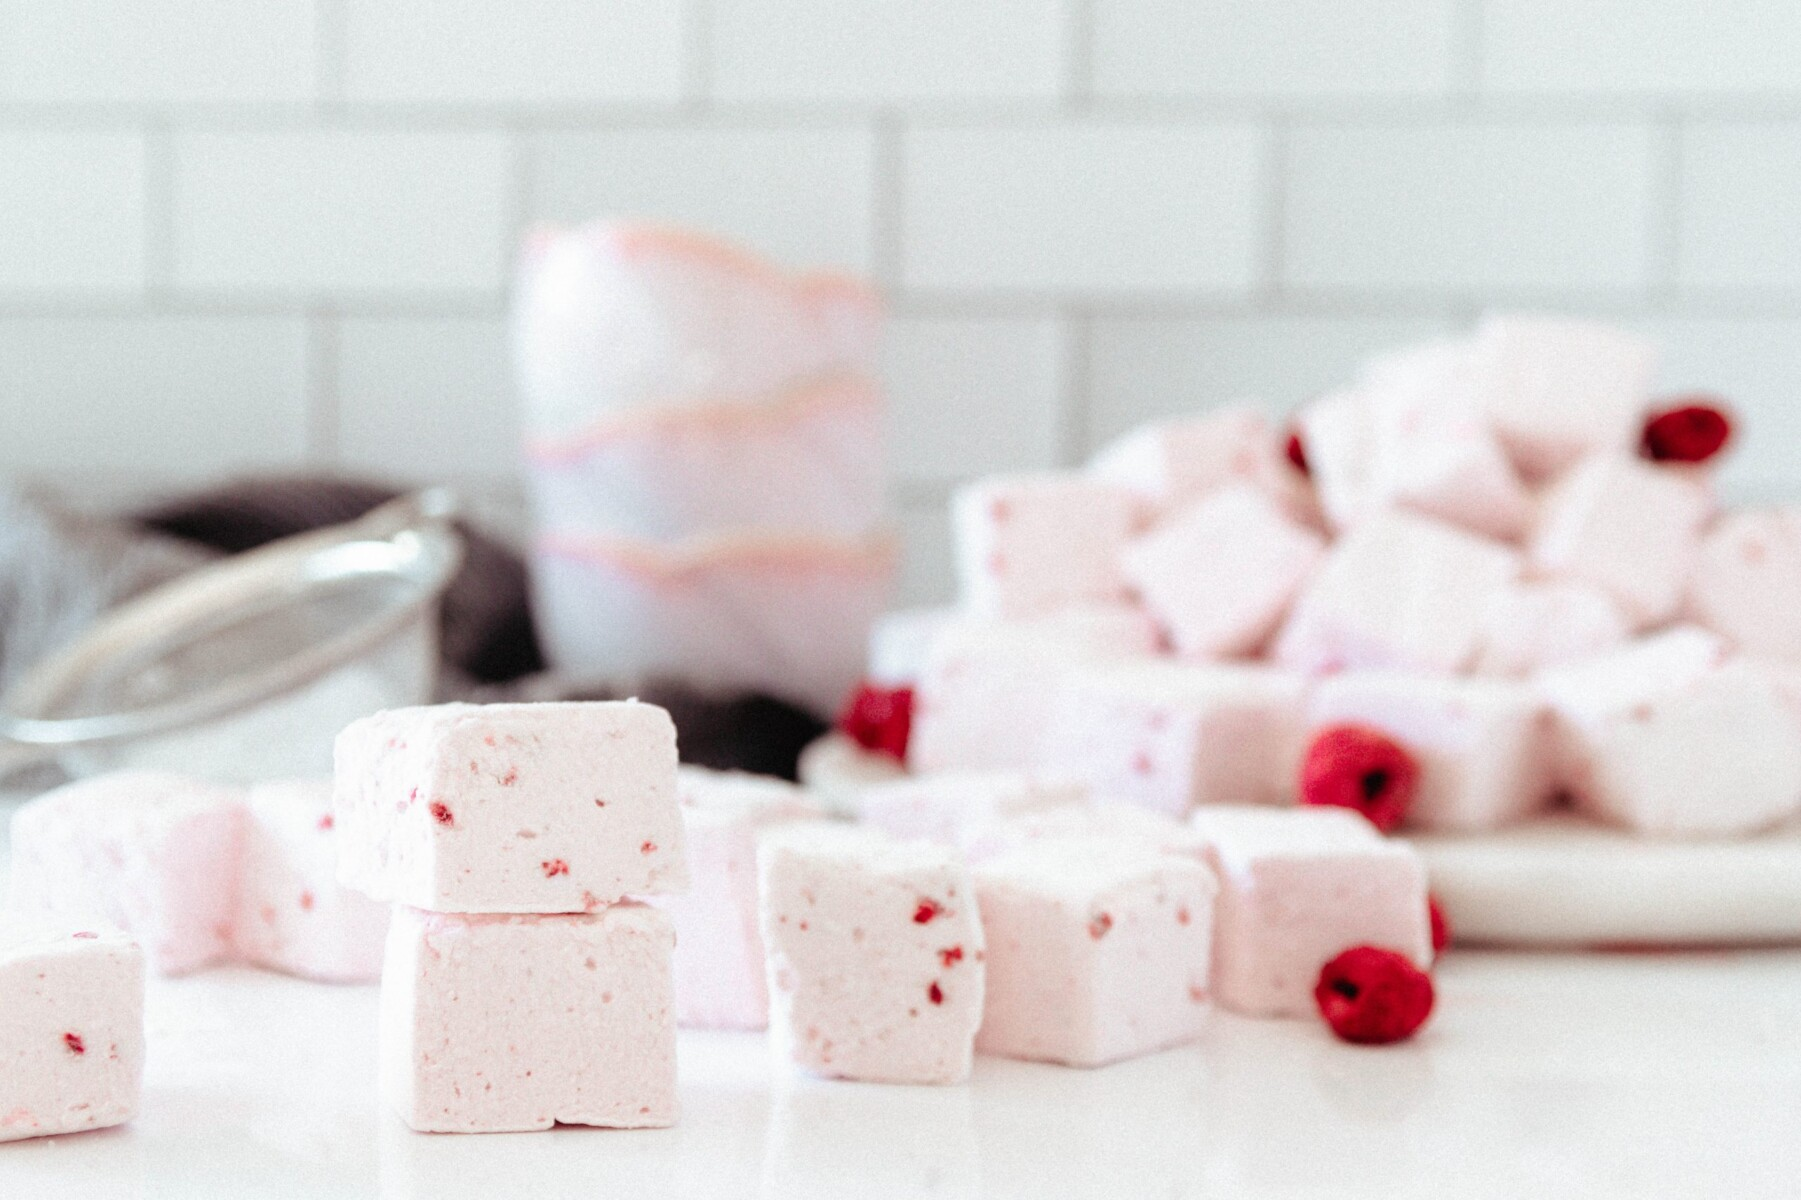 scattered marshmallows on a white surface with flower shaped pink bowls stacked in the background